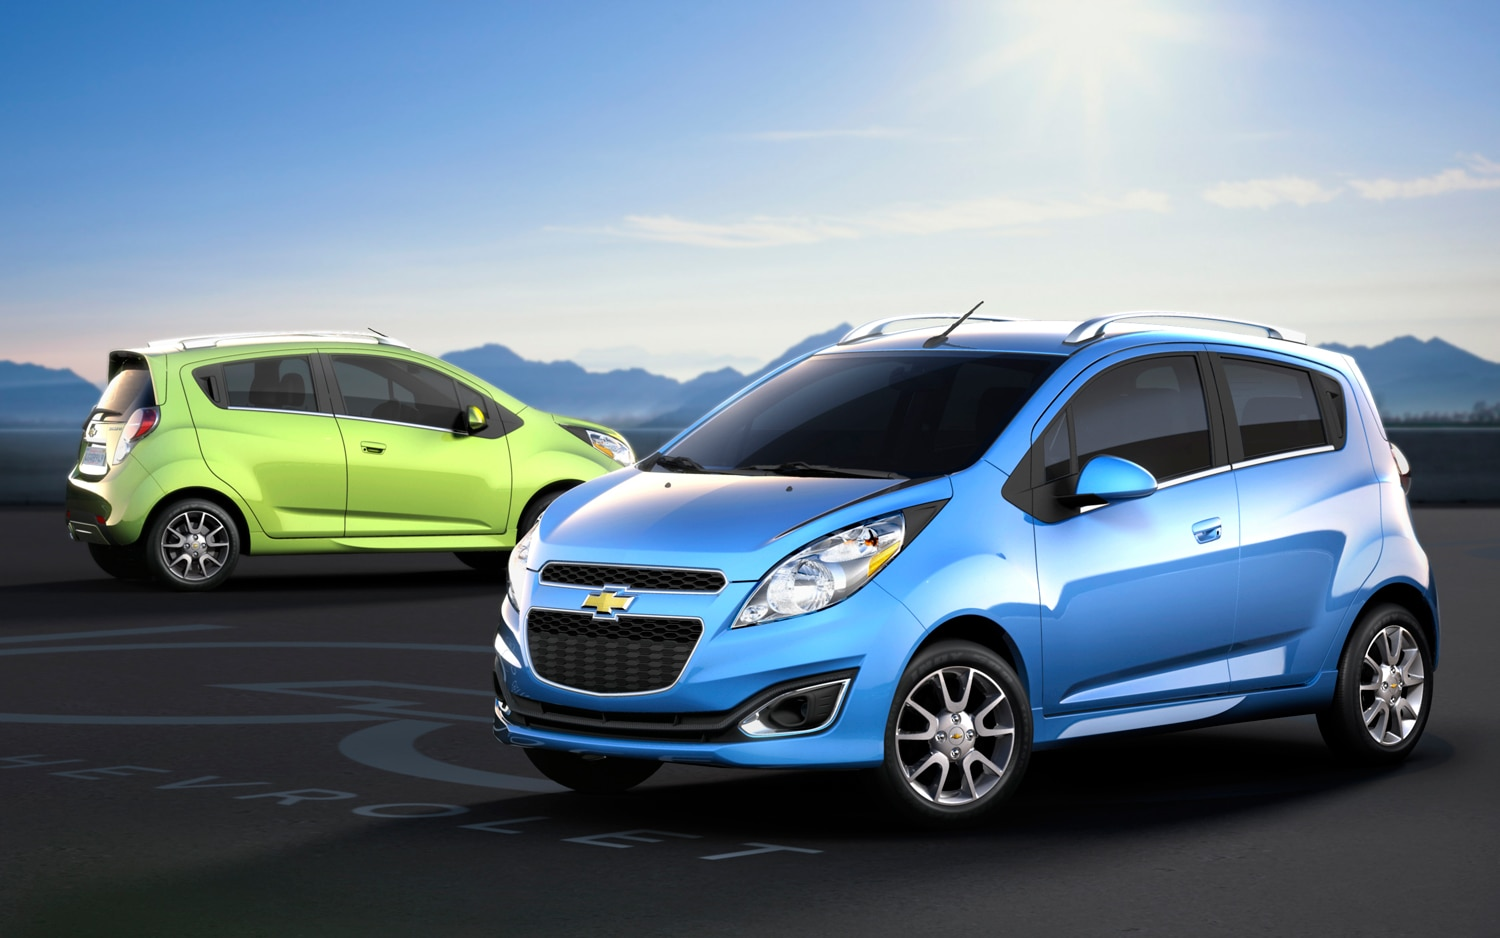 2013 Chevrolet Spark Front Rear Three Quarters1